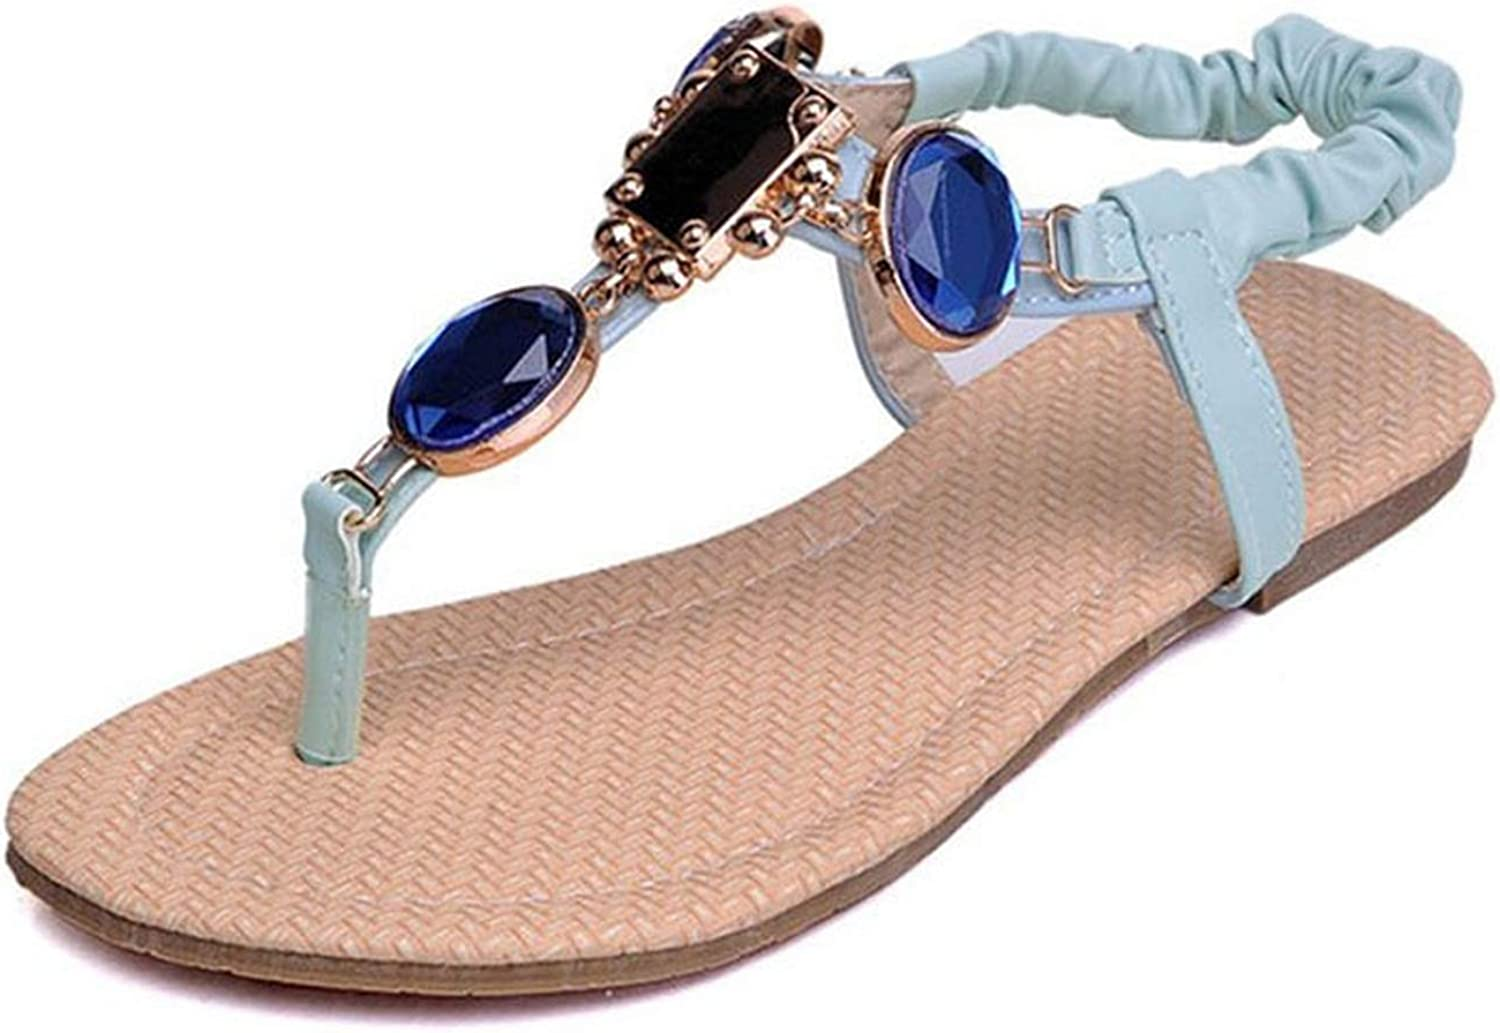 Meiguiyuan Size 31-44 Women Flats Sandals Clip Toe Rhinestones Bling Women Sandals Fashion Elegant shoes